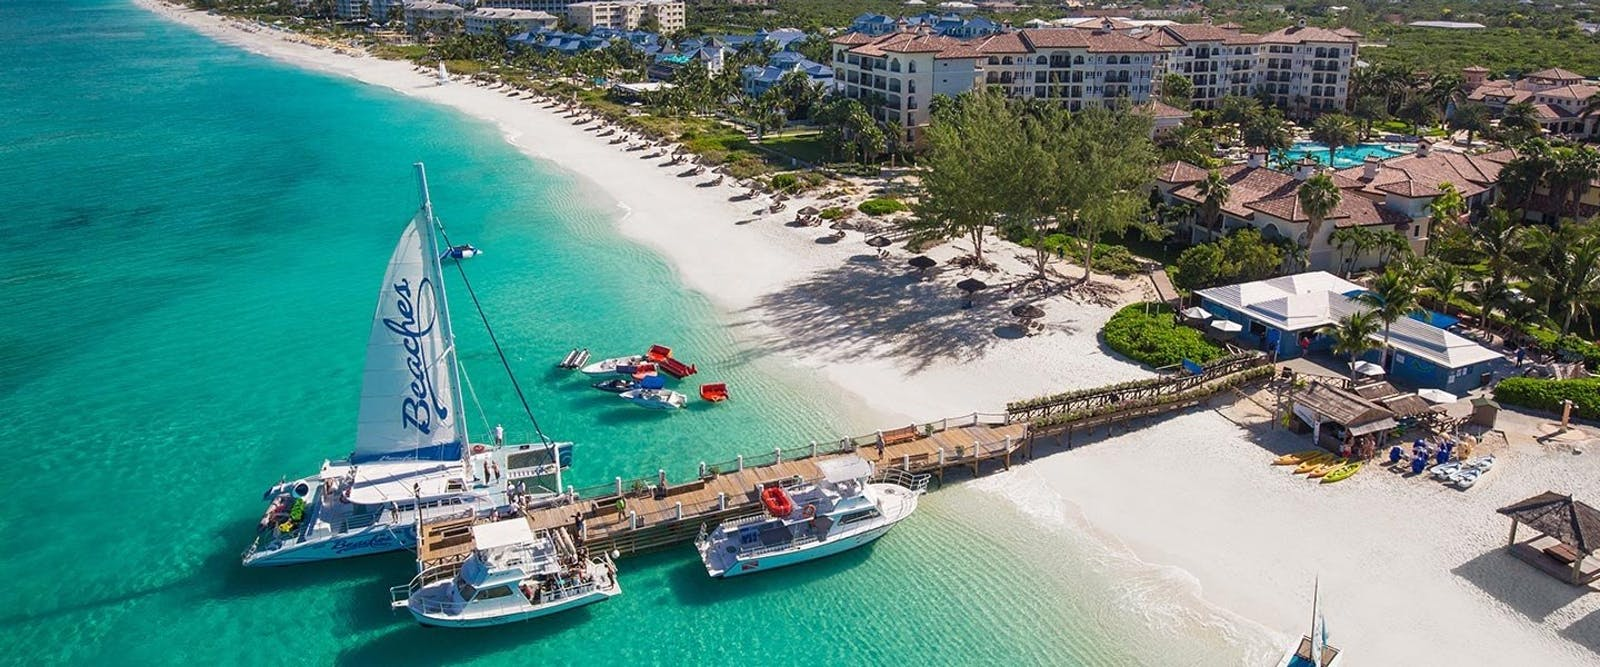 Jetty at Beaches Turks & Caicos Resort Villages & Spa